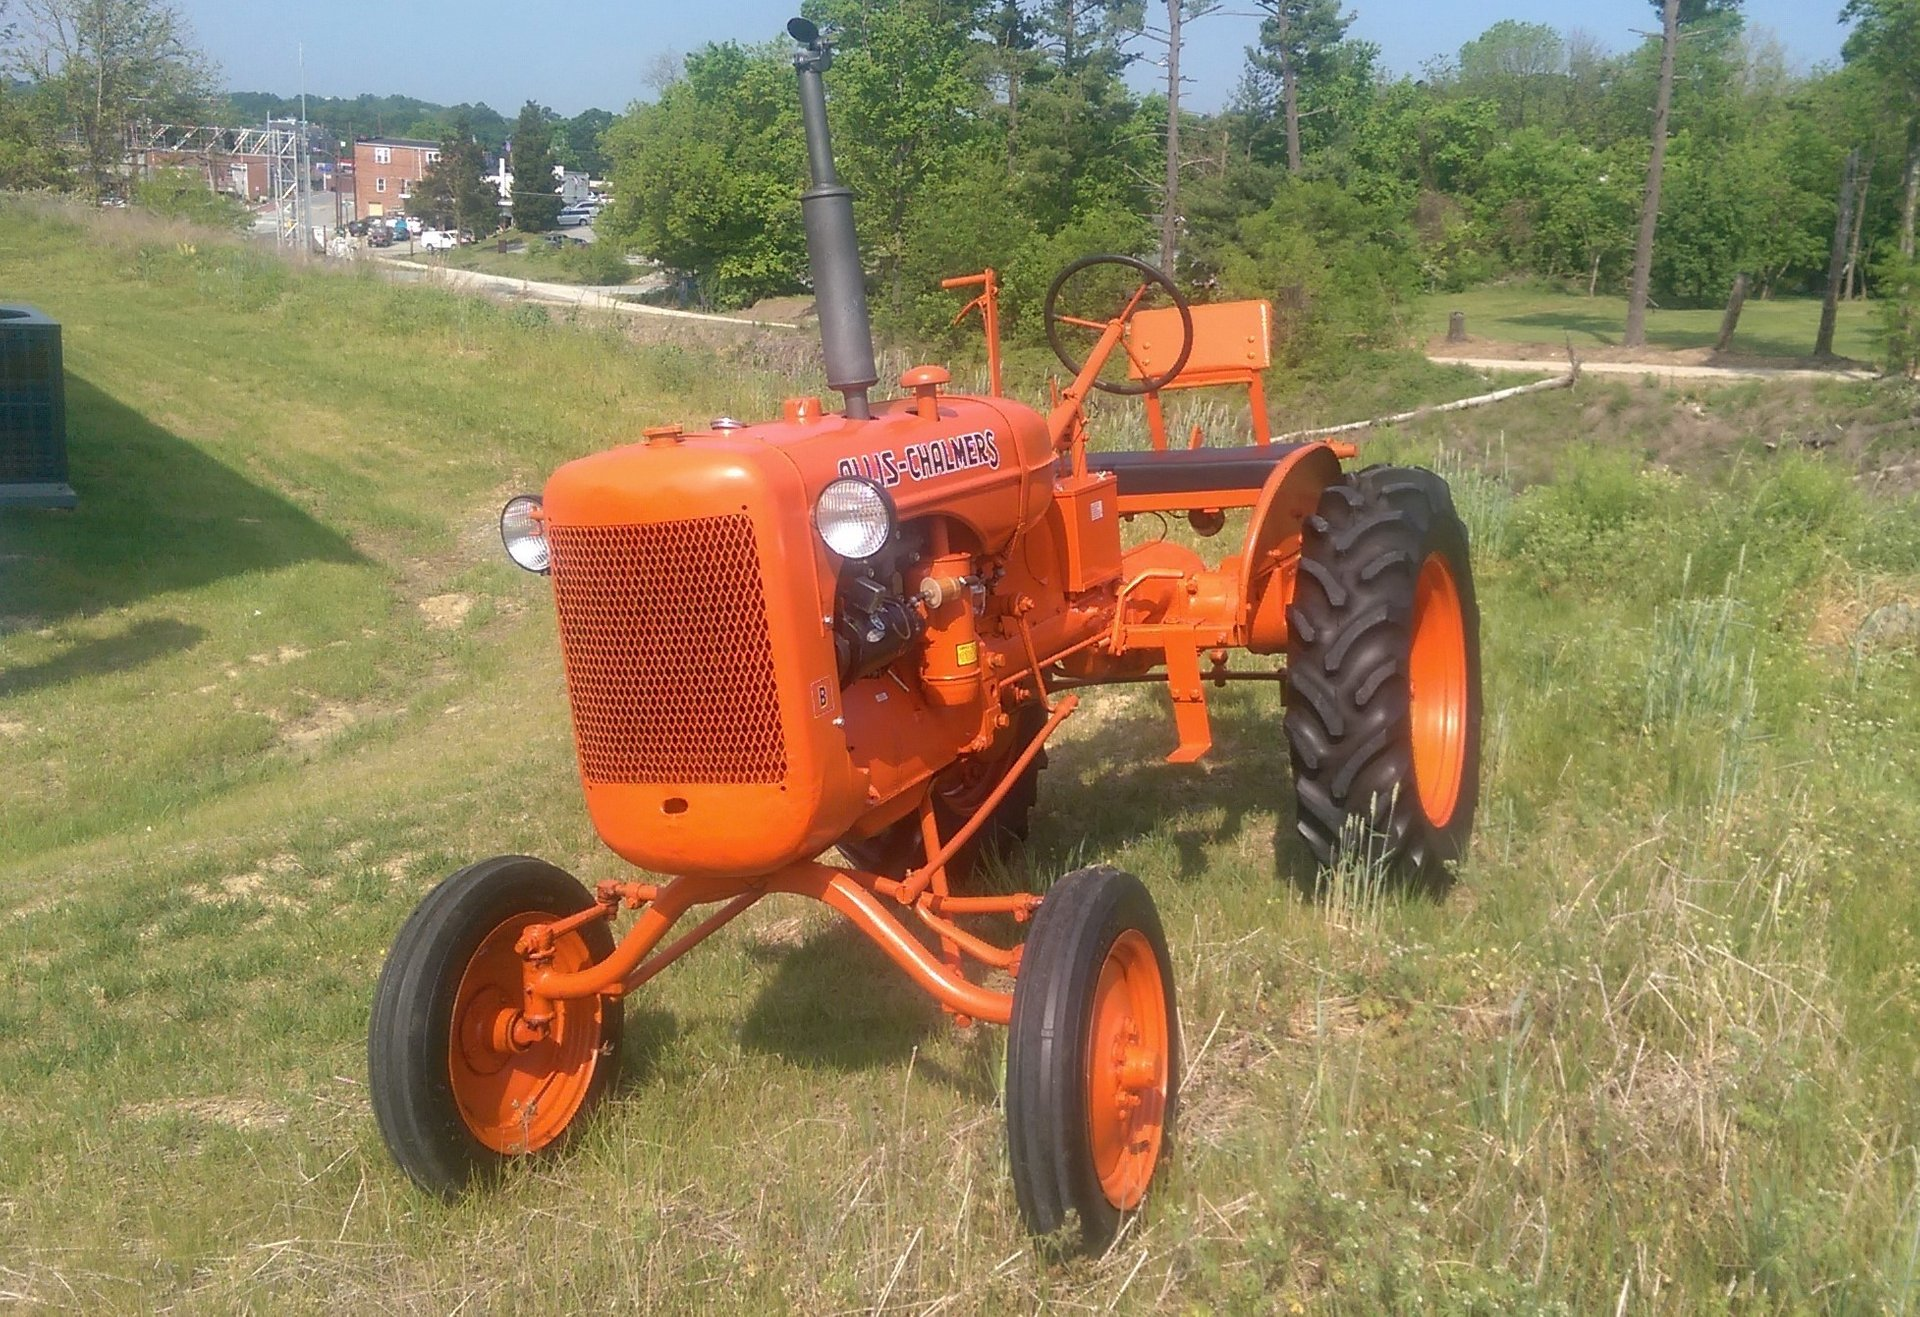 1948 allis chalmers tractor b